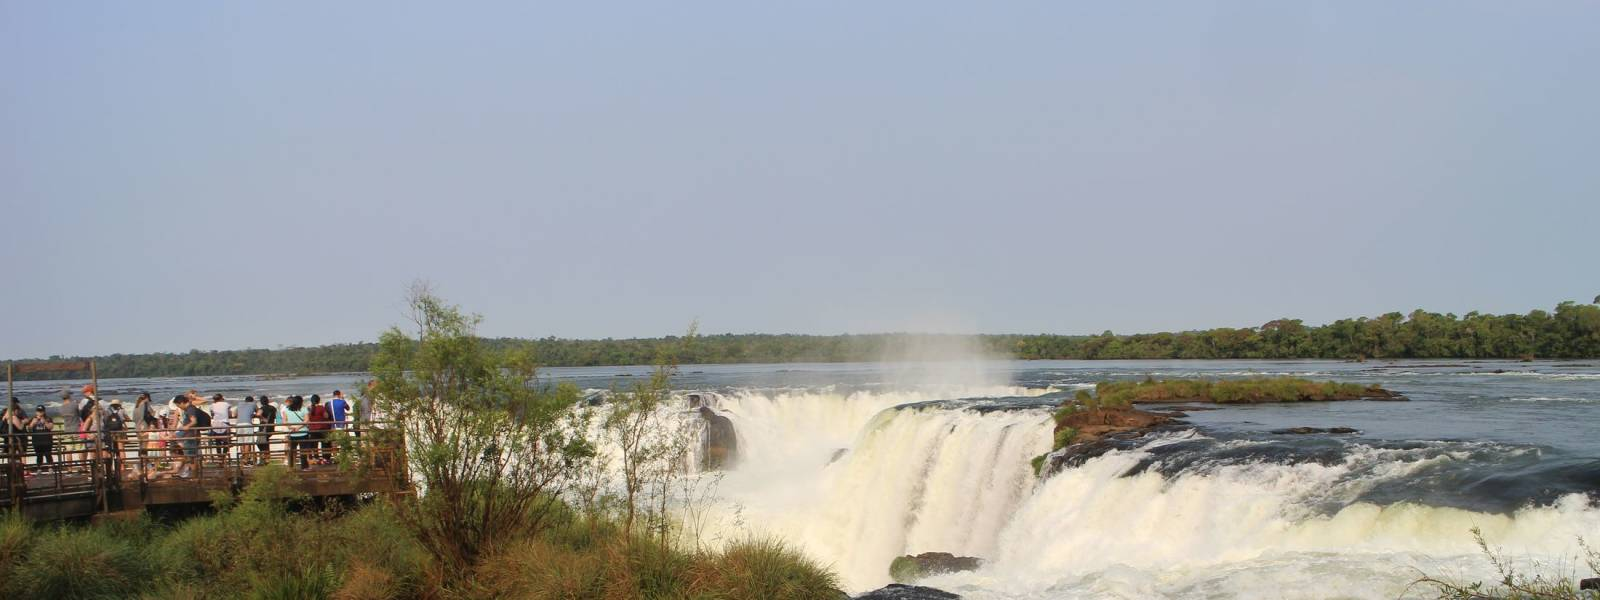 Iguazu Falls Argentina side September trip by